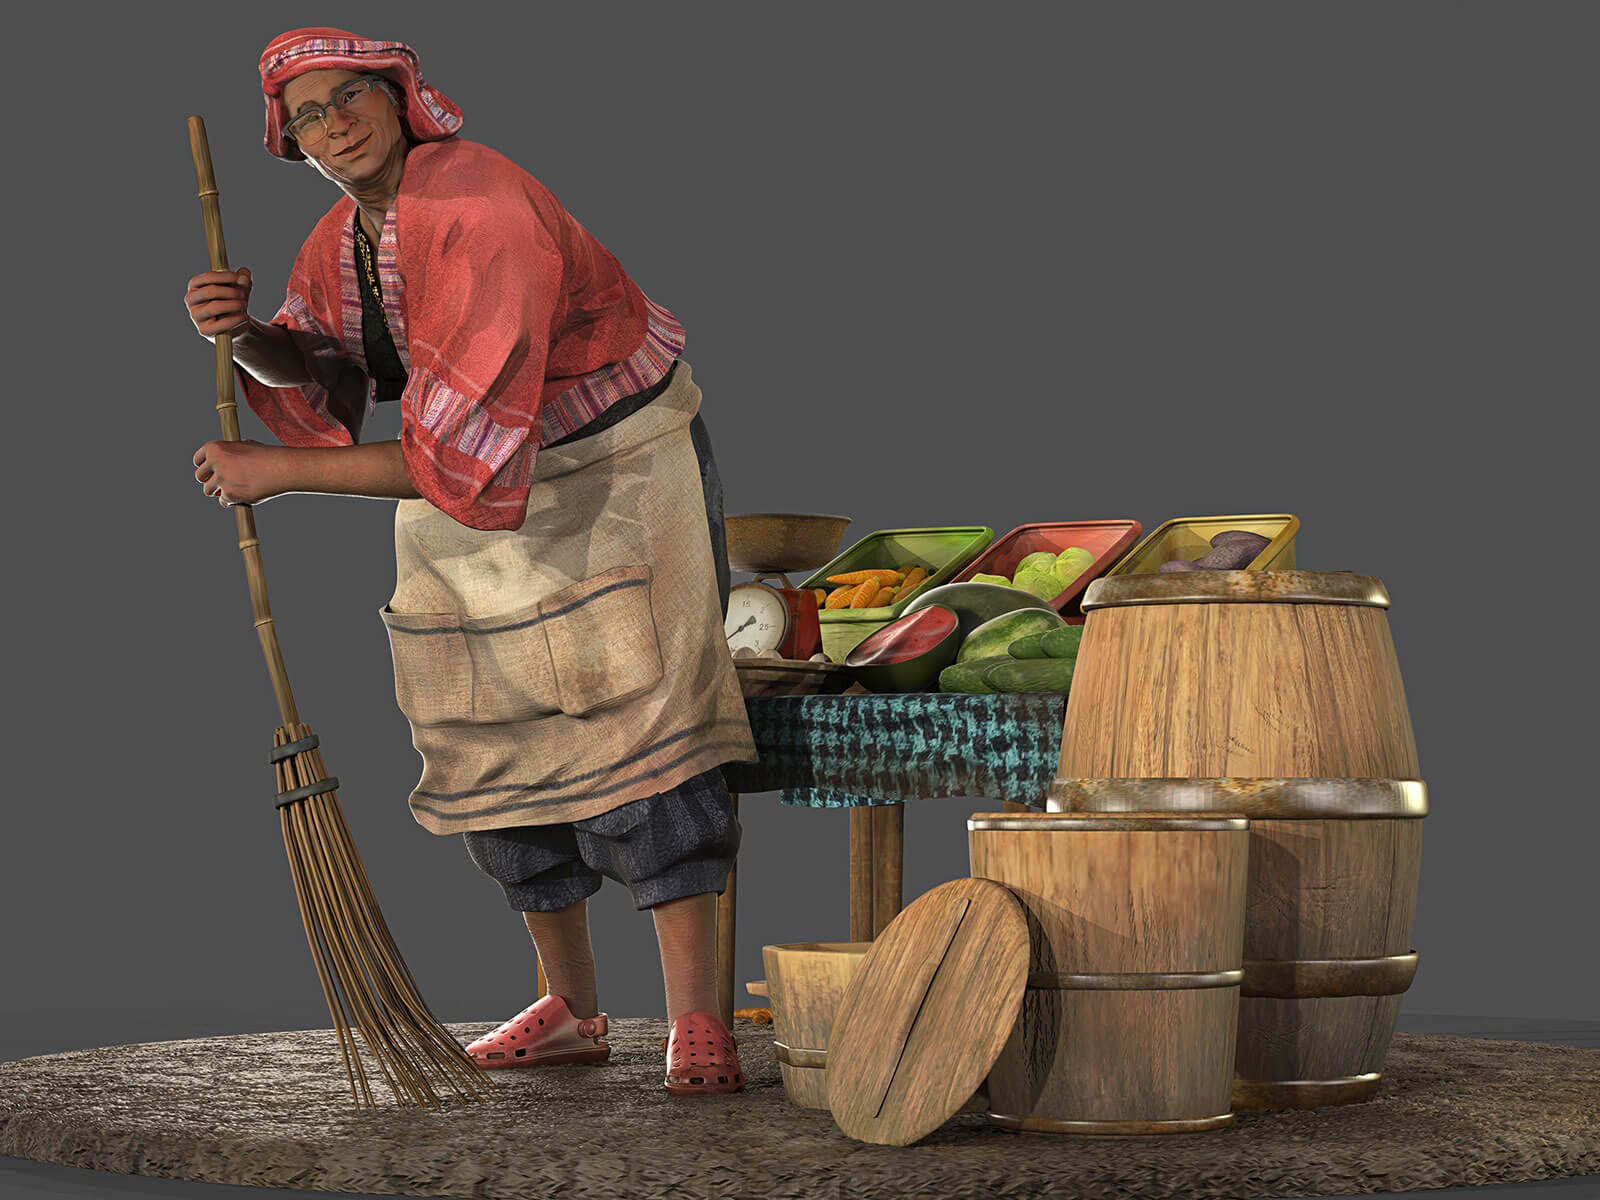 A shopkeeper wearing crocs and a linen apron sweeps with a simple bamboo broom next to a small table of vegetables.